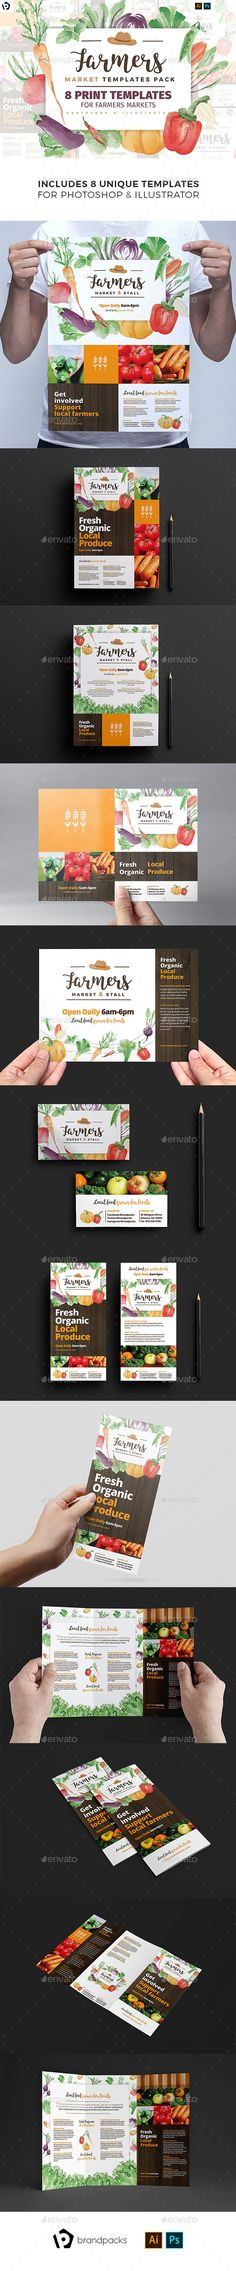 Farmers Market Templates Pack This set of readymade print templates are perfect . A4 Poster, Poster Prints, Posters, Farmers Market, Organic Packaging, Print Templates, Invitation Templates, Psd Templates, Flyer Template